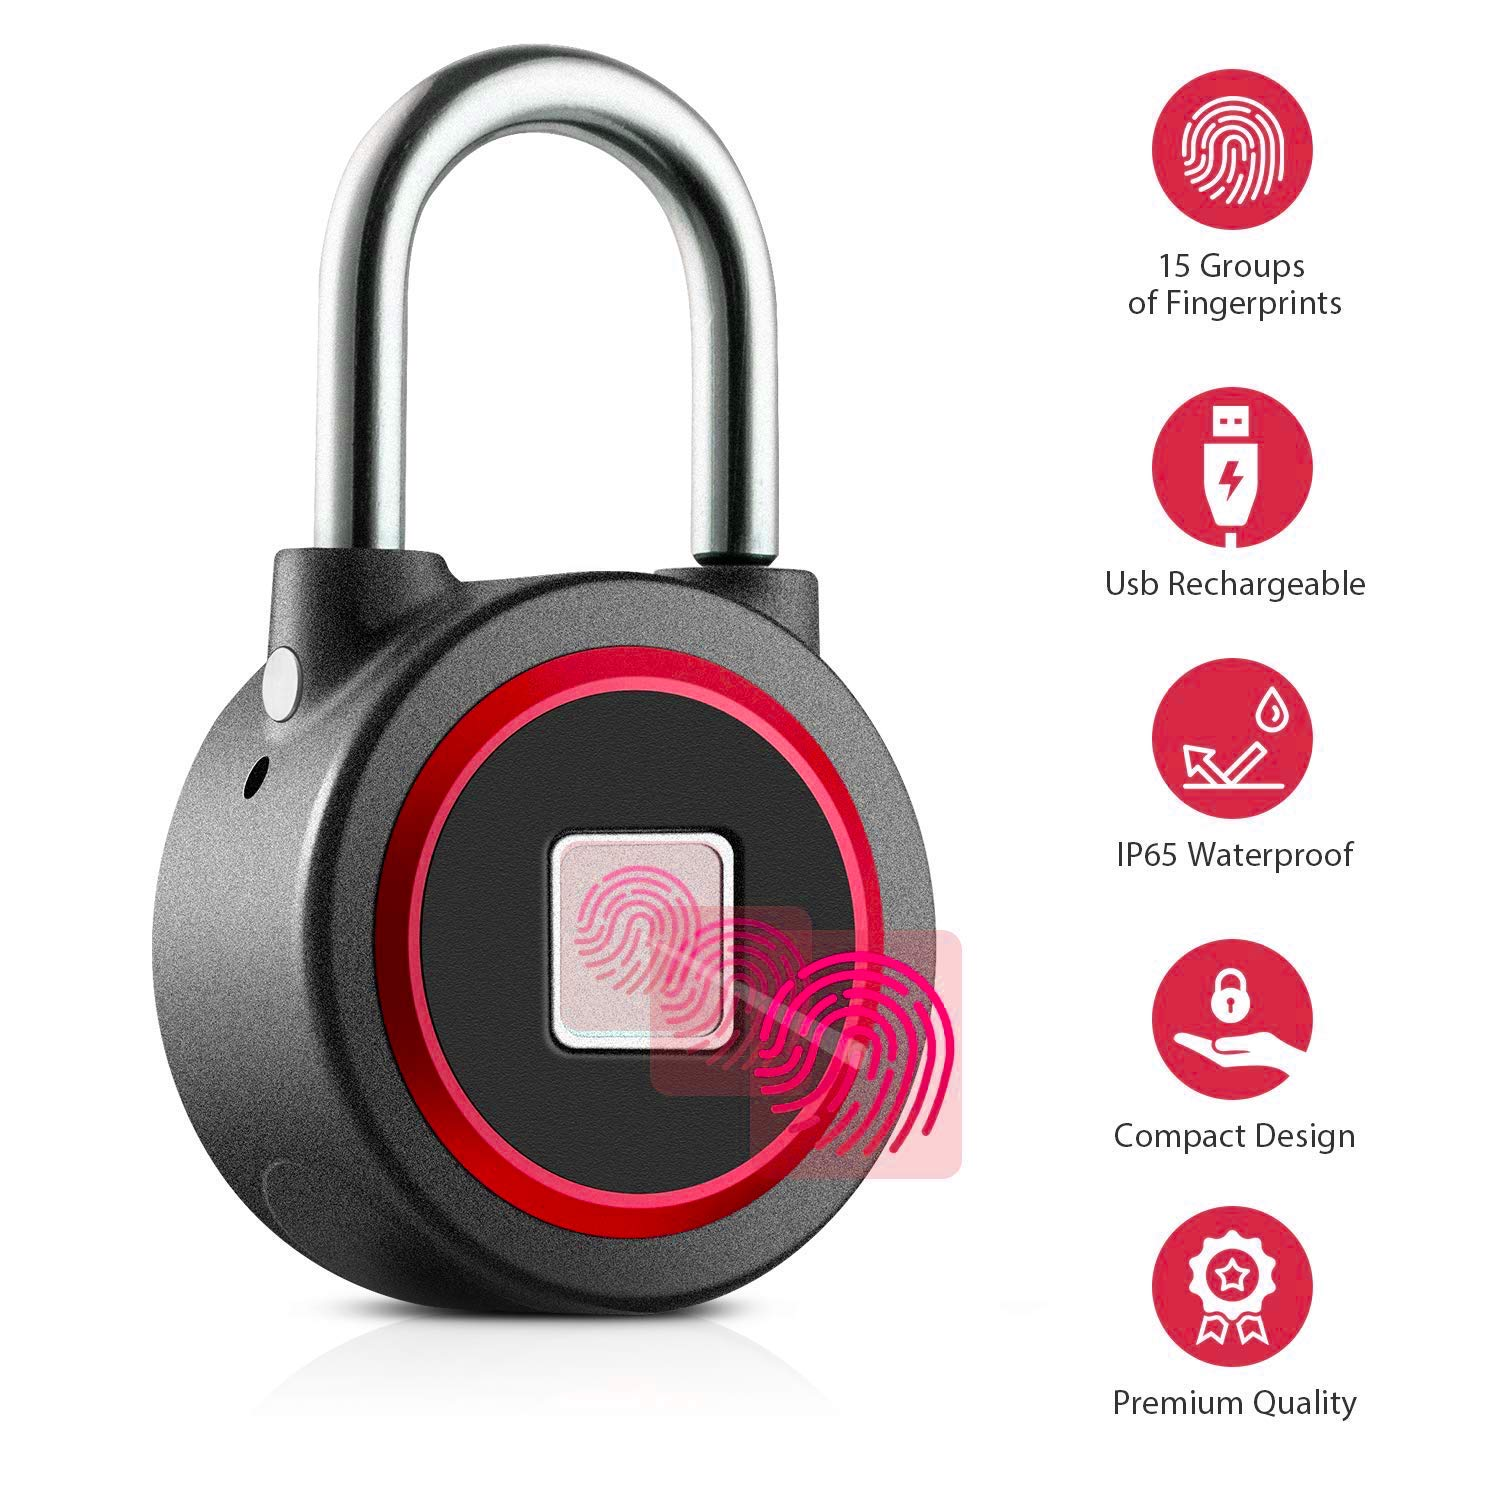 Fingerprint Padlock, Bluetooth, Waterproof, Anti Theft, keyless and biometric, Smart Lock Works with iOS & Android | Security Lock by GSi | usable for Gym, School, Luggage, cabinets | Metal by GSi